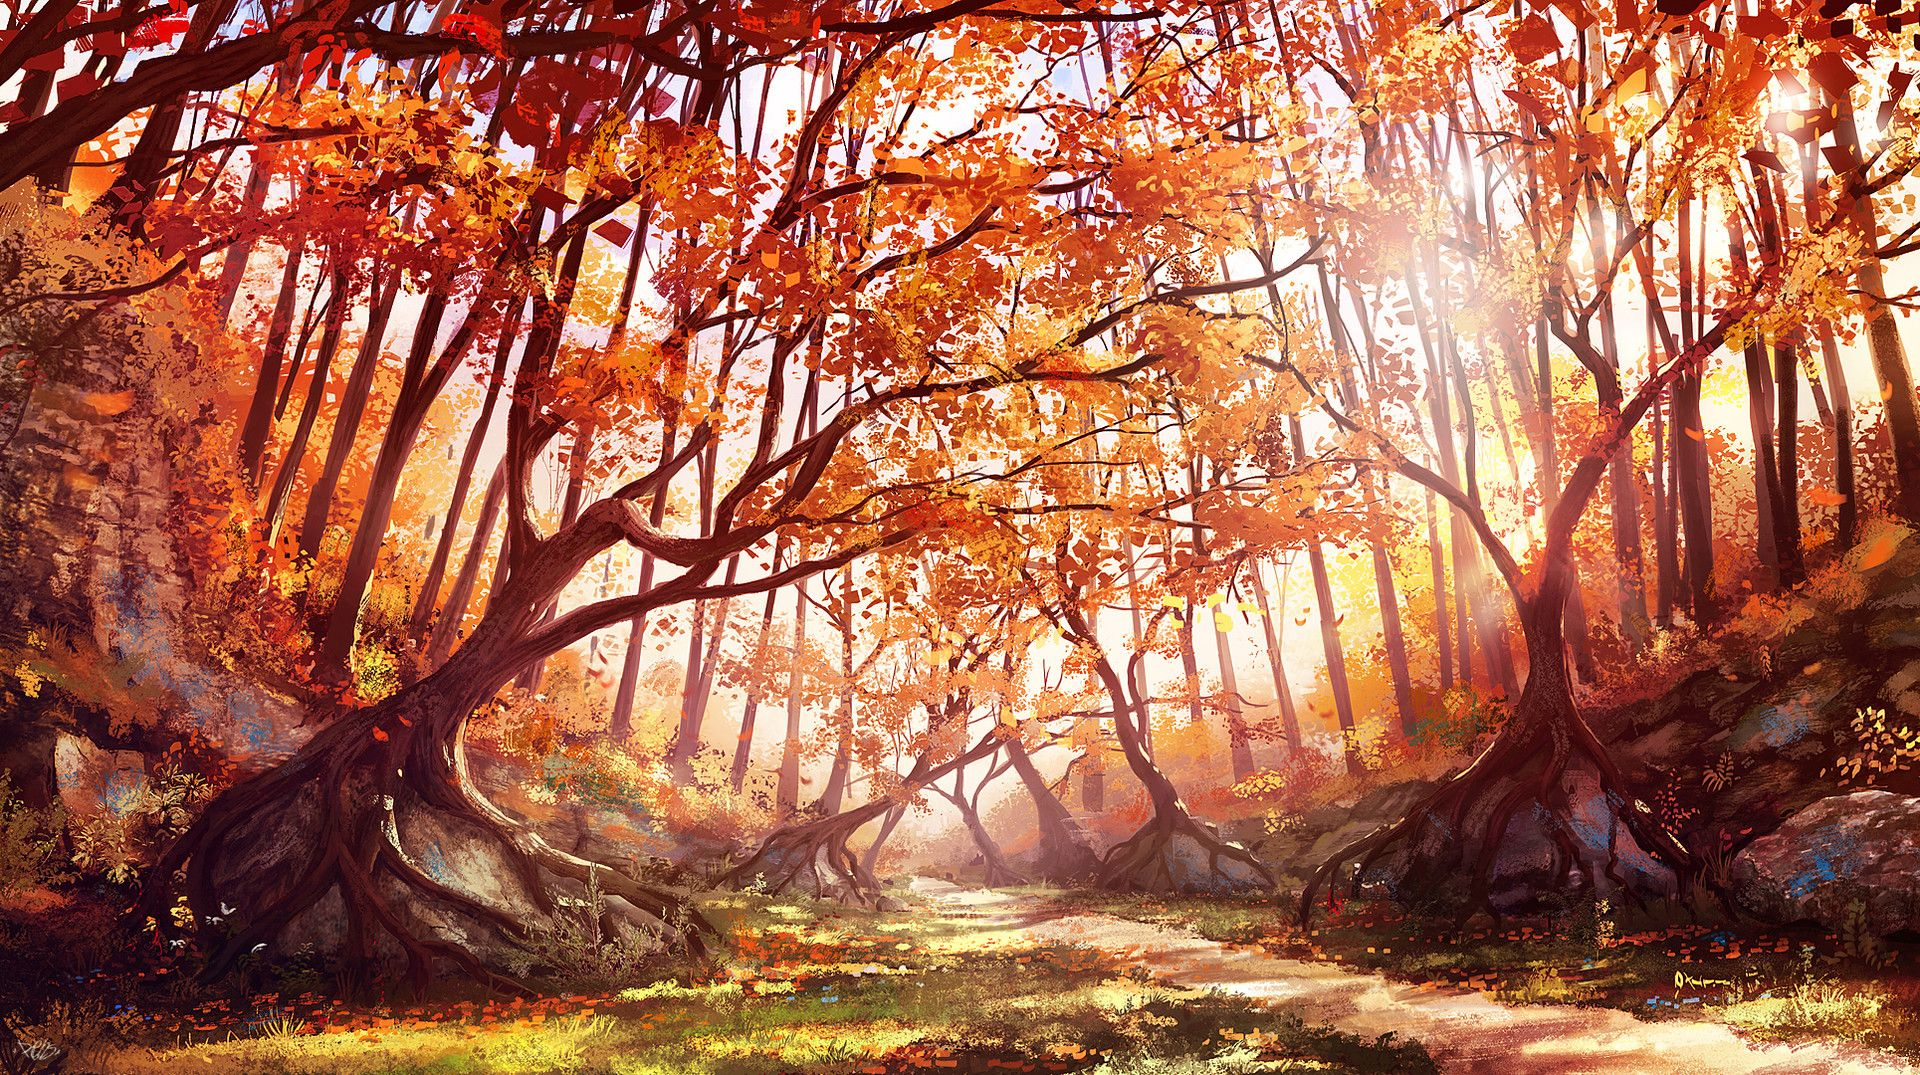 Kings Fall Wallpaper Autumn Forest By Renaud Perochon Gt Glorious Digital